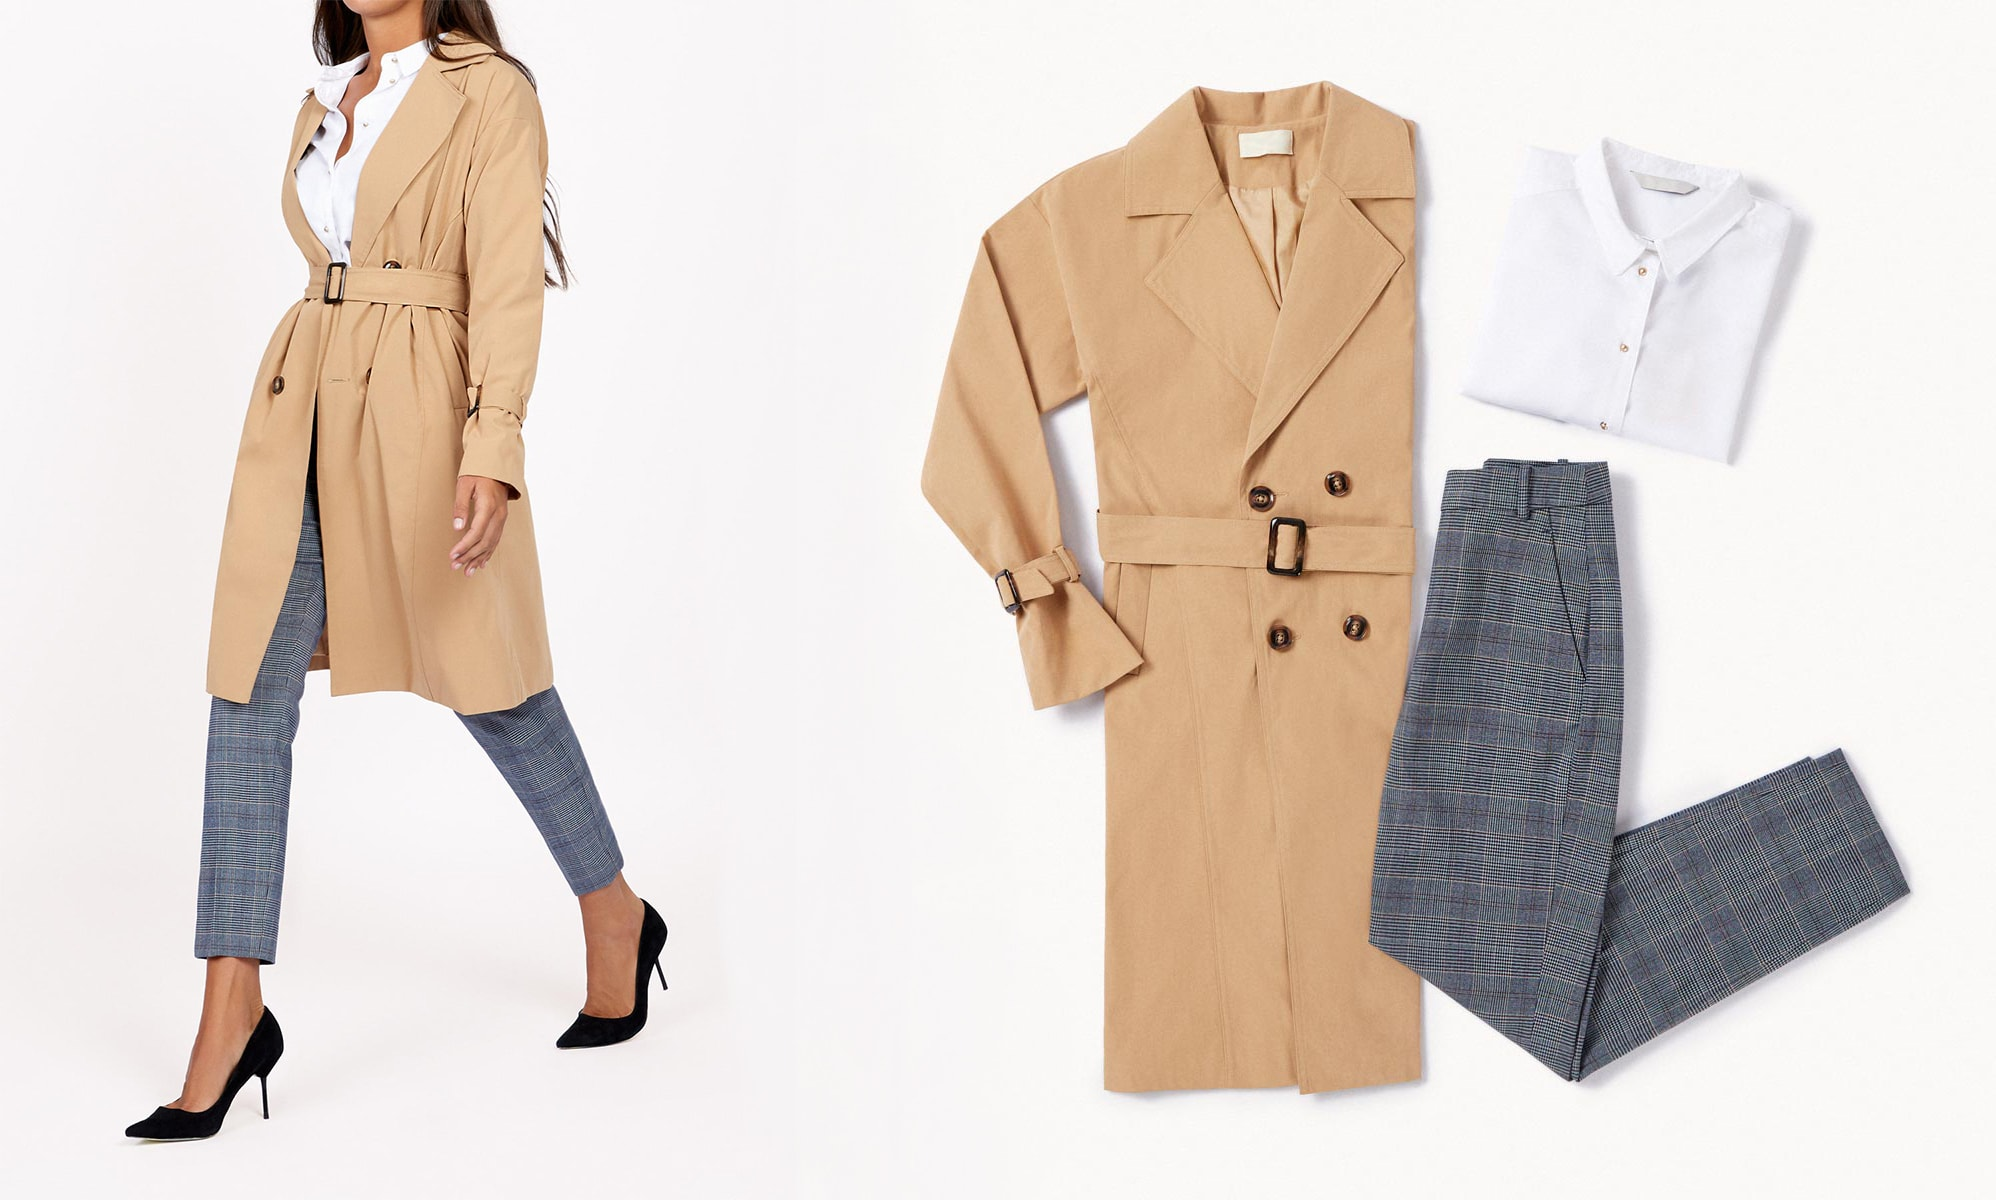 stylish classic trench outfit